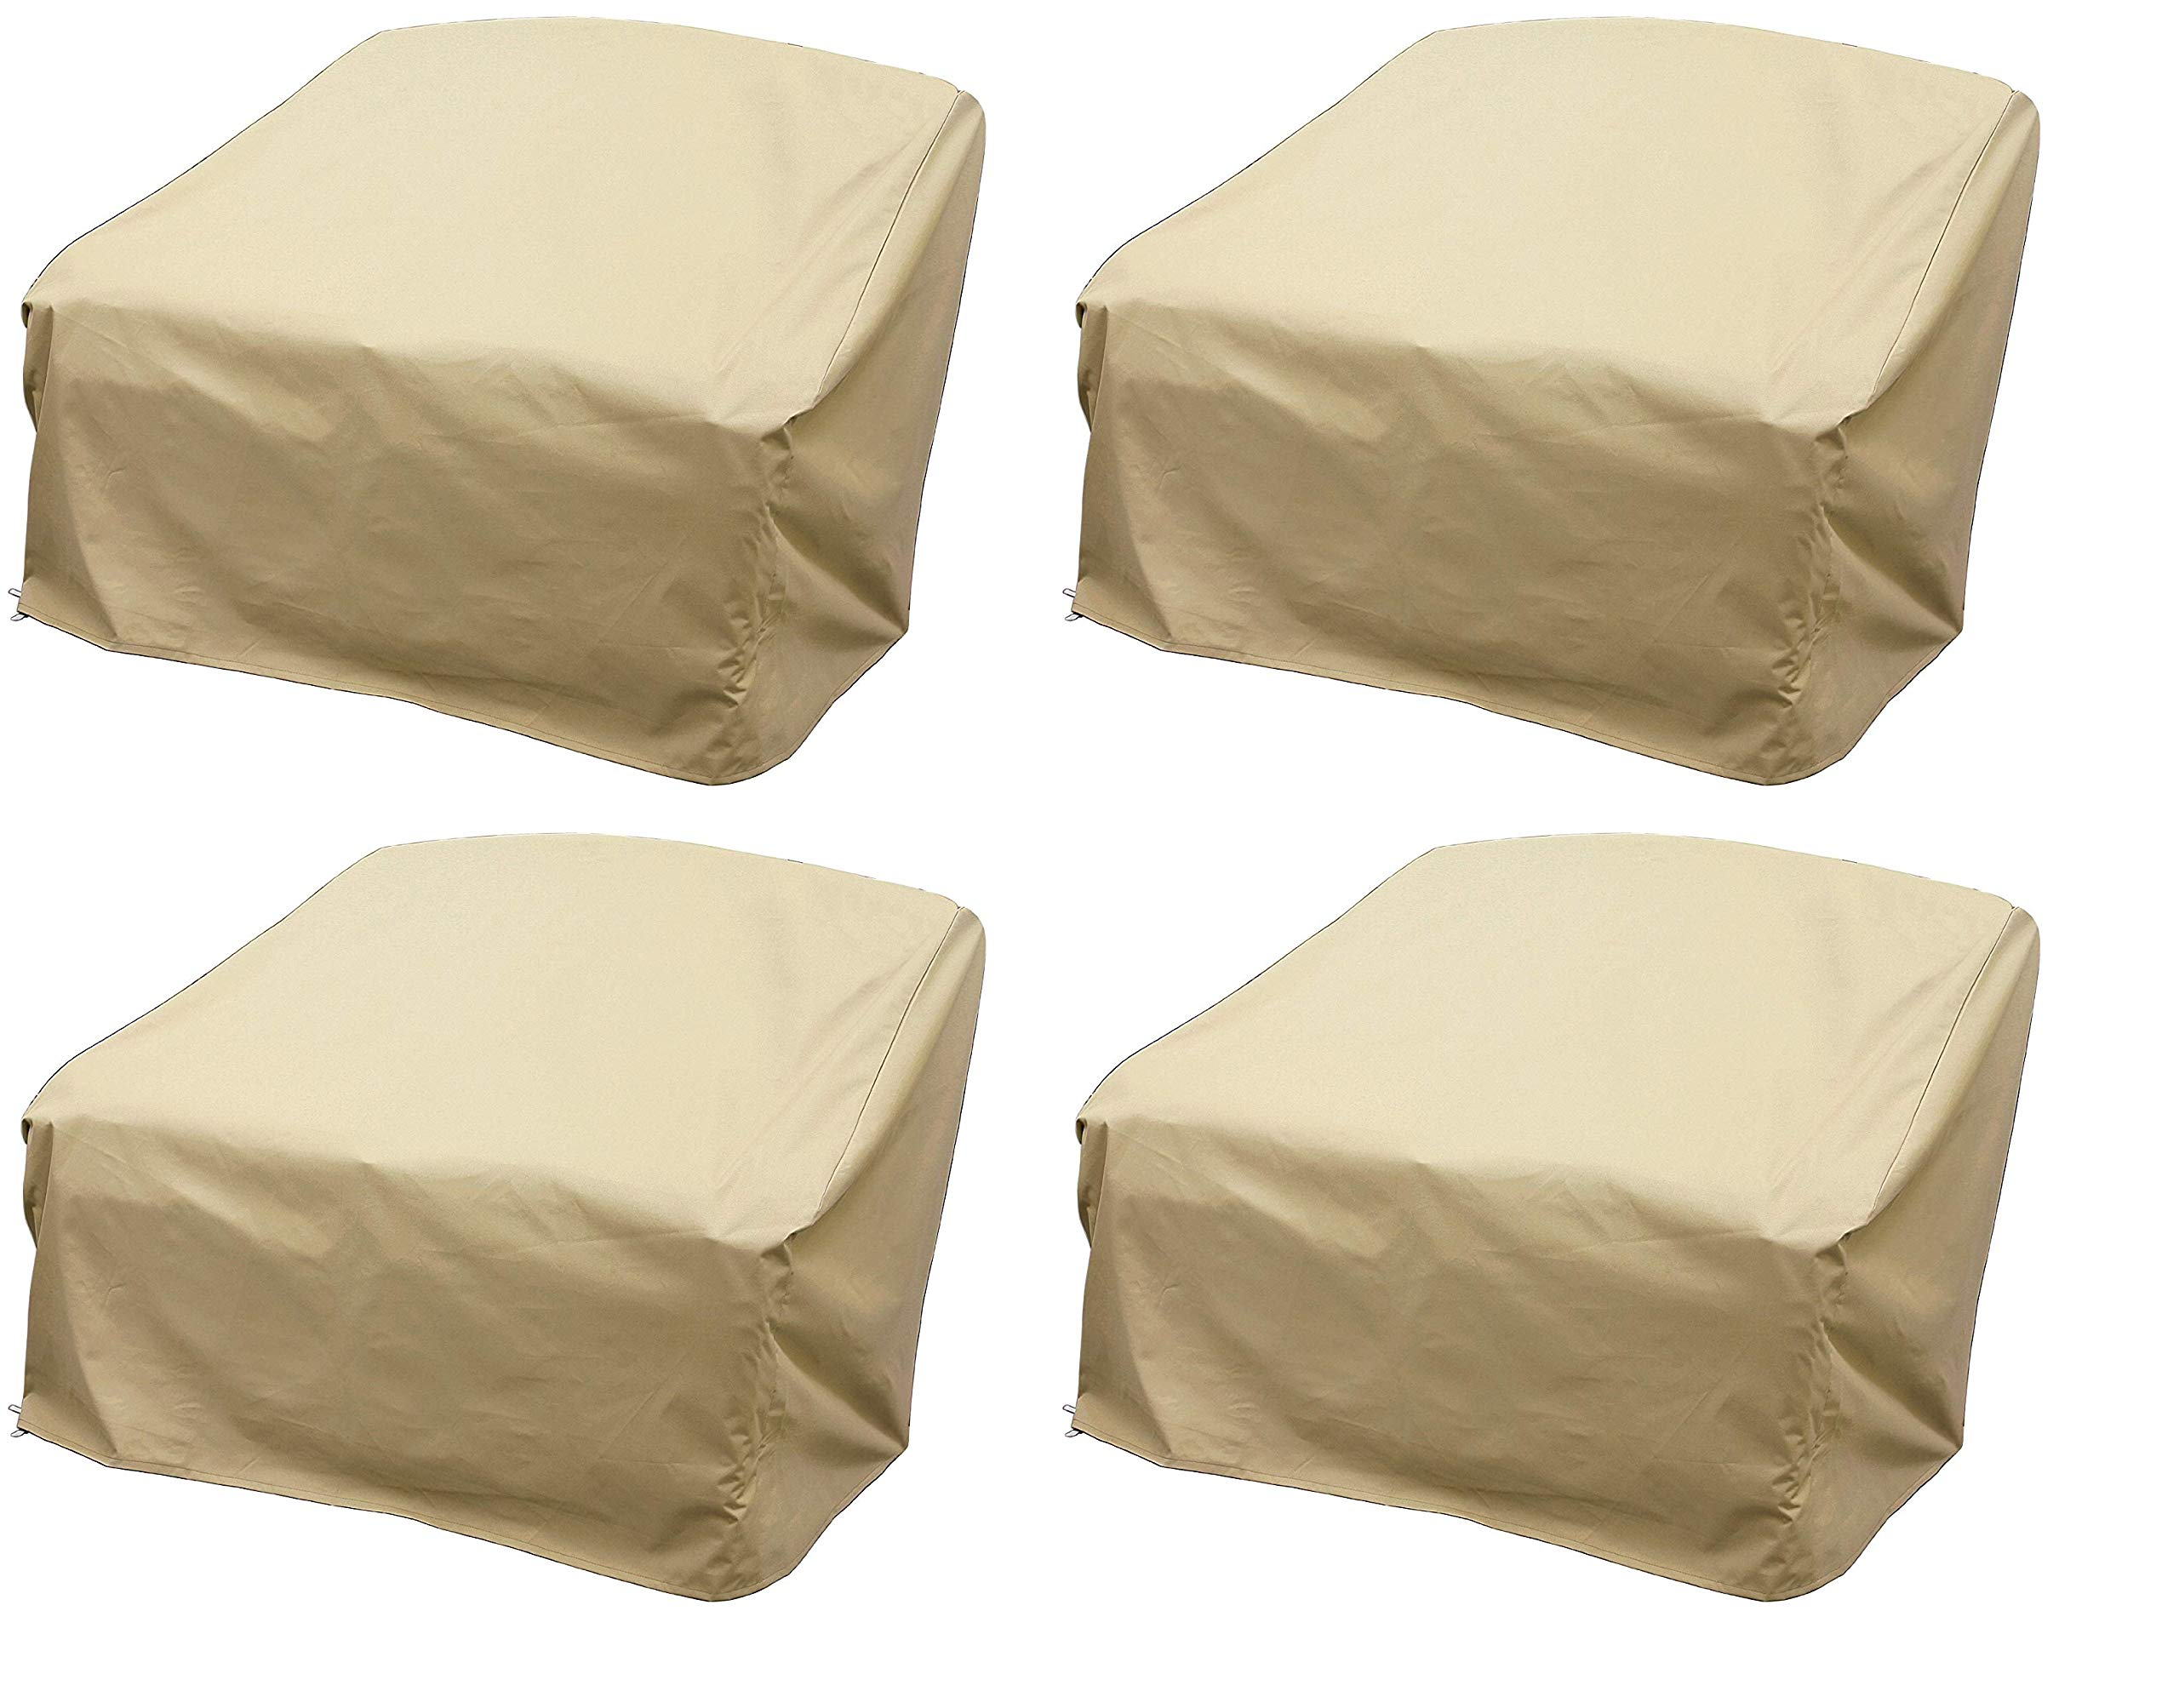 Modern Leisure 7466 Patio Love Seat Cover, Outdoor Patio Furniture Cover, Waterproof, 55 L x 33 W x 38 H inches, Tan (Pack of 4)